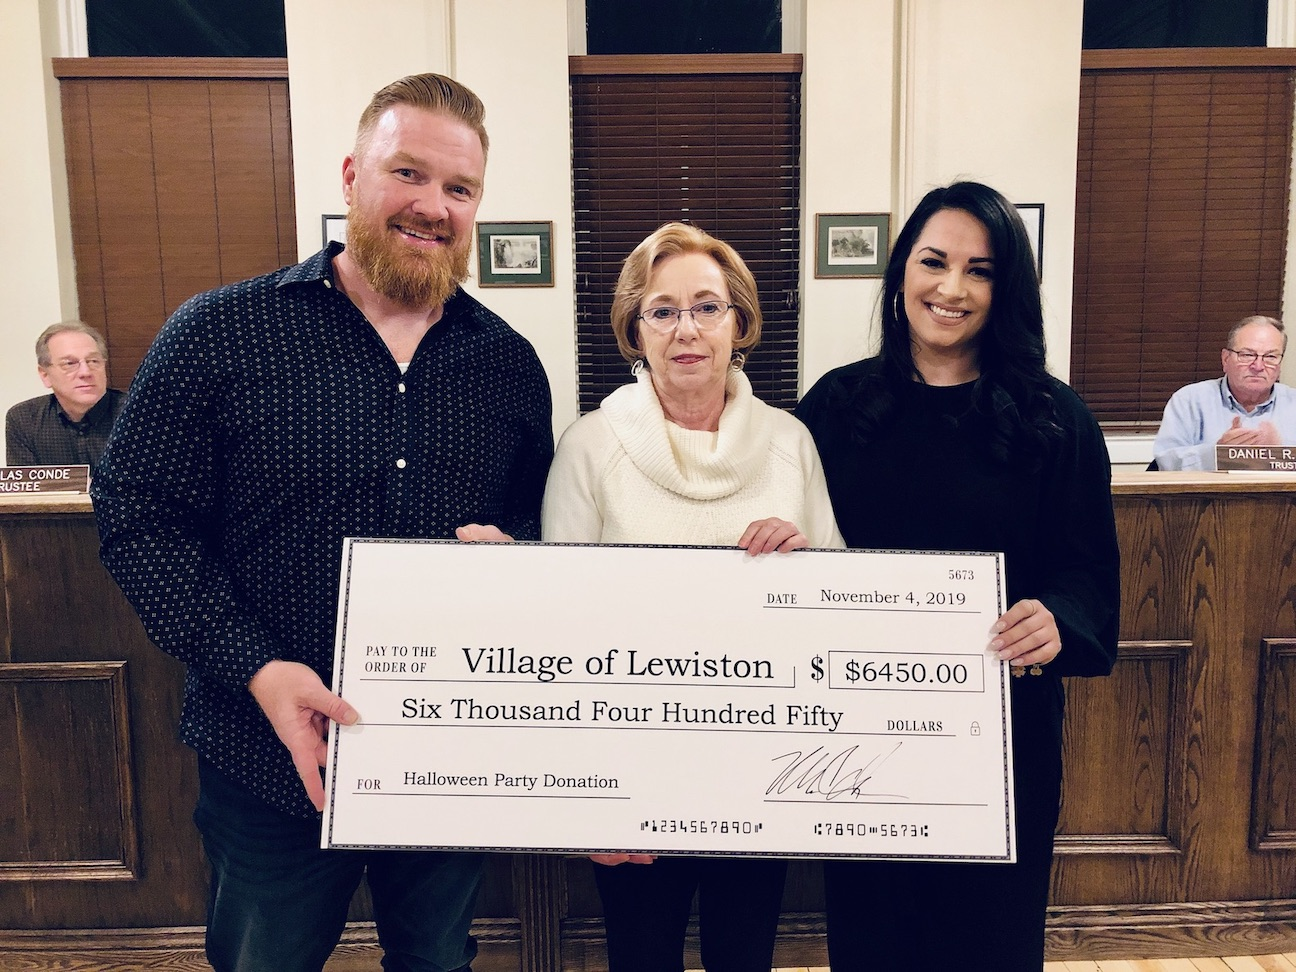 Michael Carroll and his girlfriend, Brittney Page, present a donation to Village of Lewiston Mayor Anne Welch prior to Monday's Village Board work session.